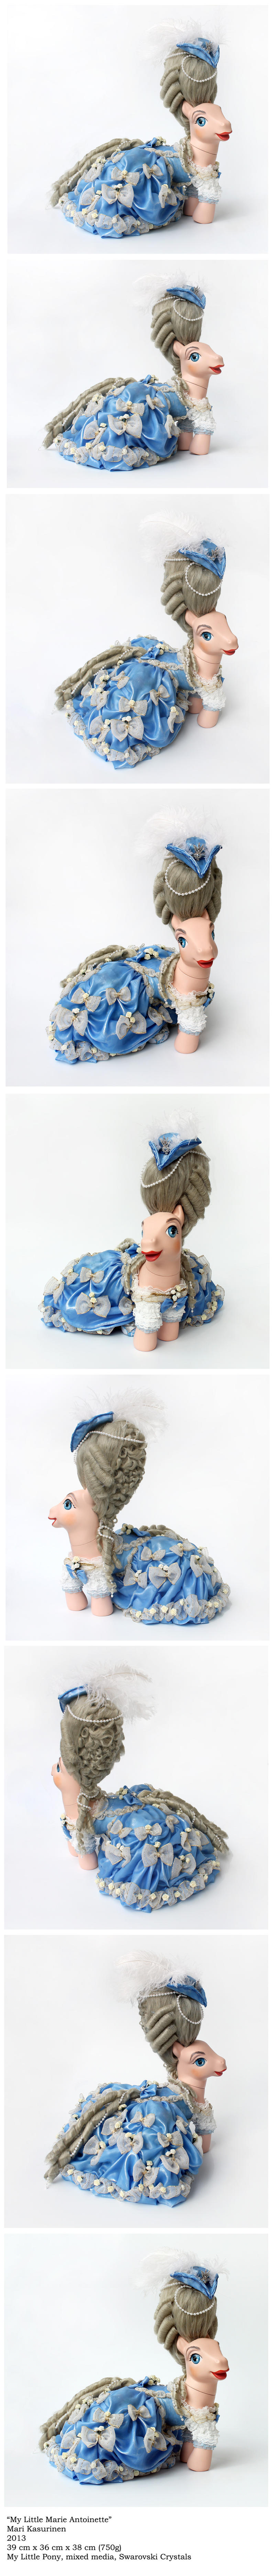 My Little Marie Antoinette by Spippo